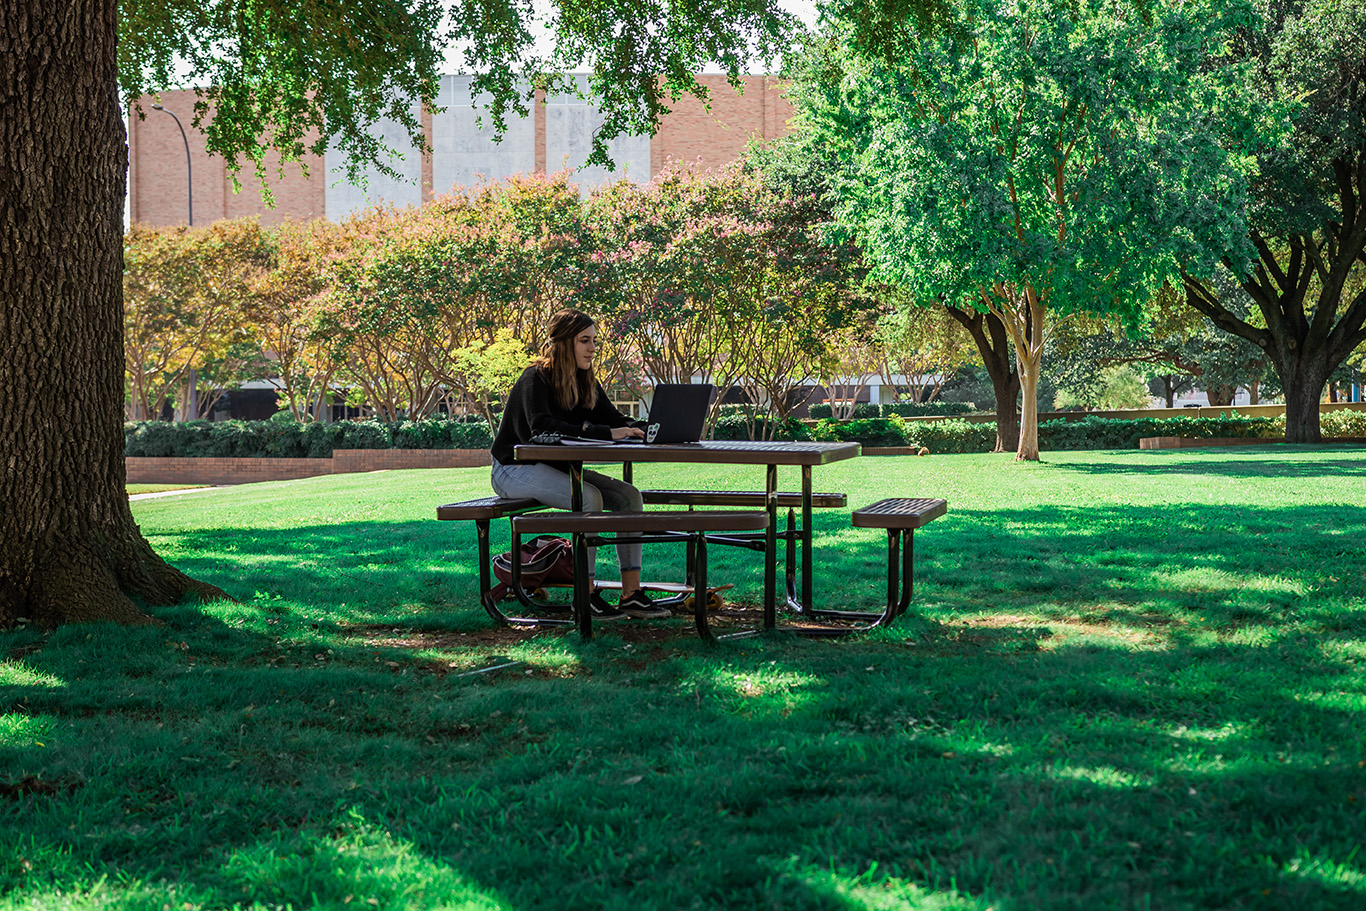 A person sitting on a bench with a computer